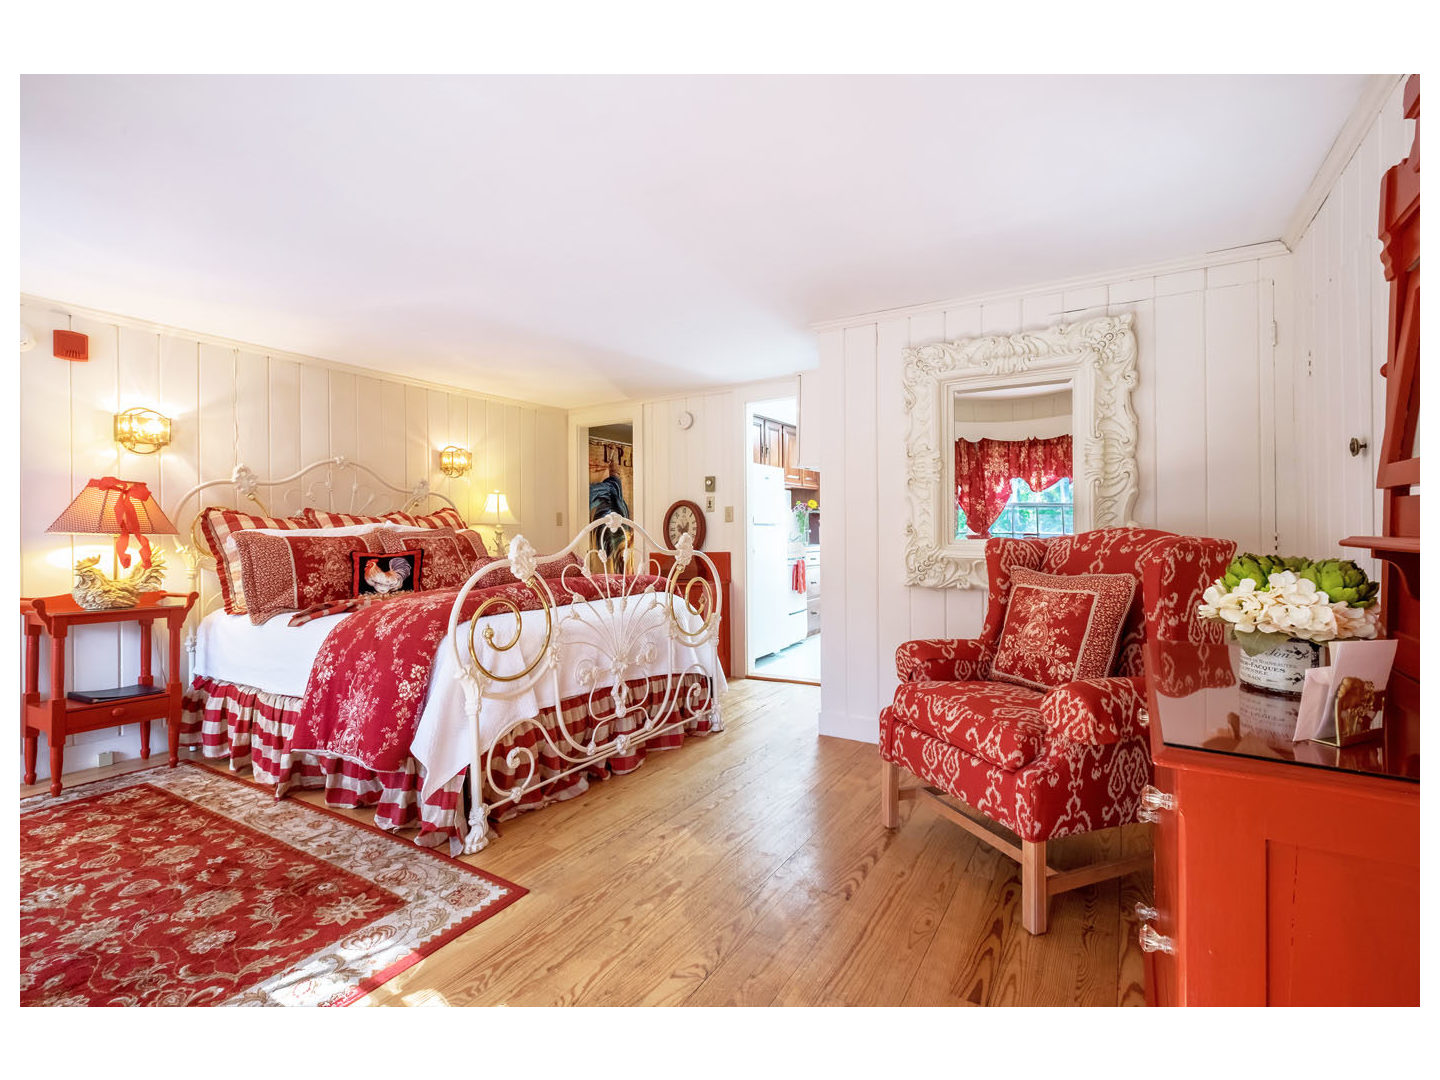 A living area with red and white furniture at Hartwell House Inn.